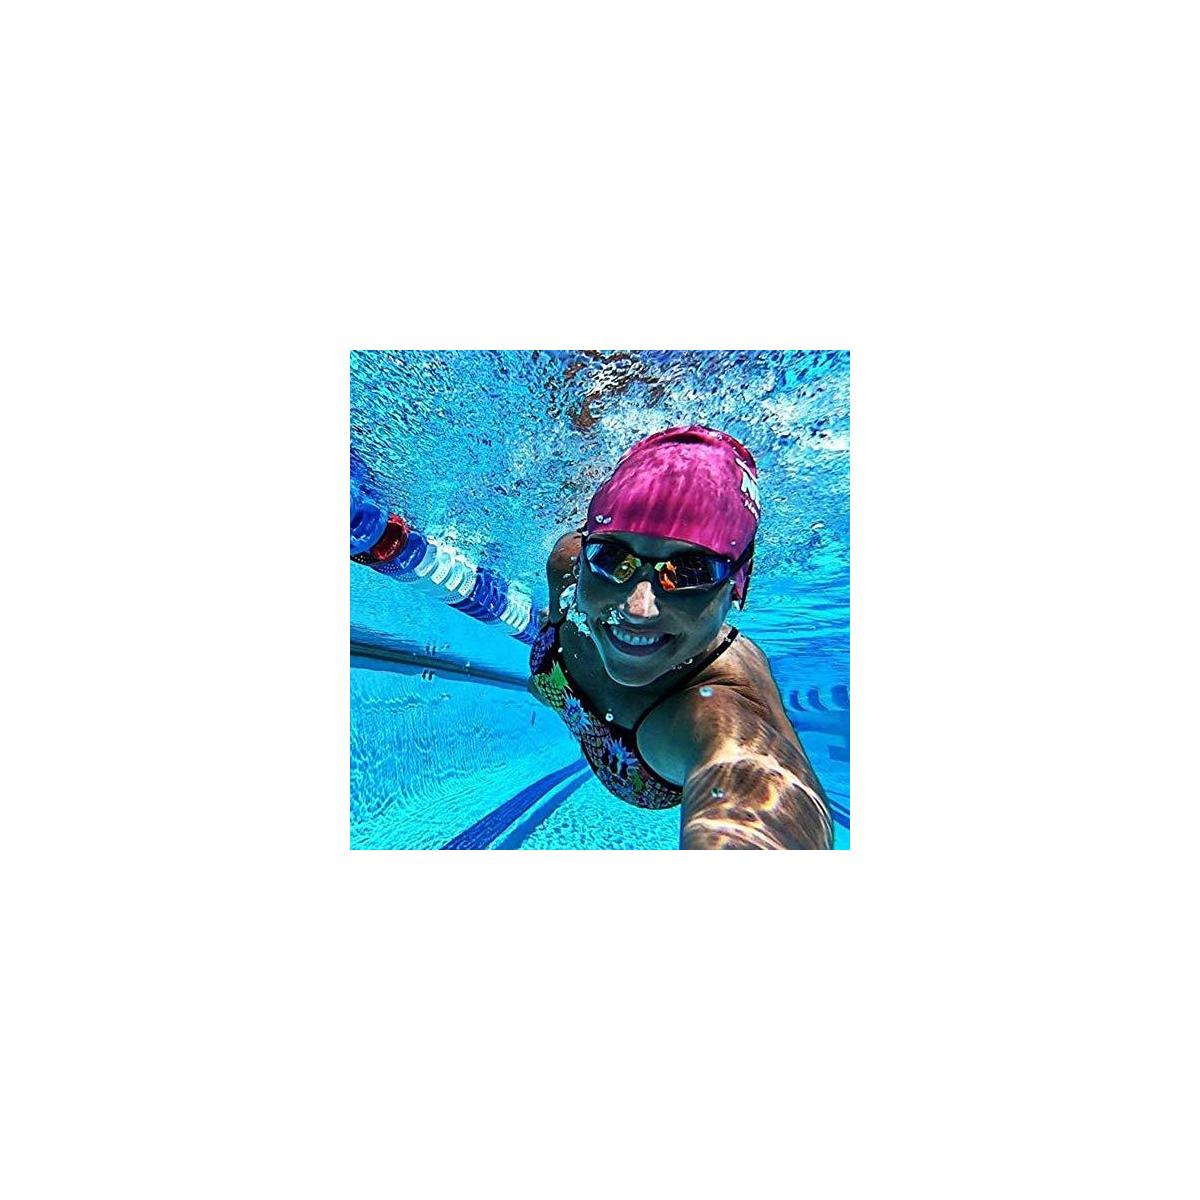 THEMAGIC5 | Custom Fit Swim Goggles | Specifically Designed for Your Face to Prevent Leaking Fogging & Discomfort | Elite Competition Goggles for Racing Triathlons & Everyday Exercise |  Blue Magic Mirror Gold